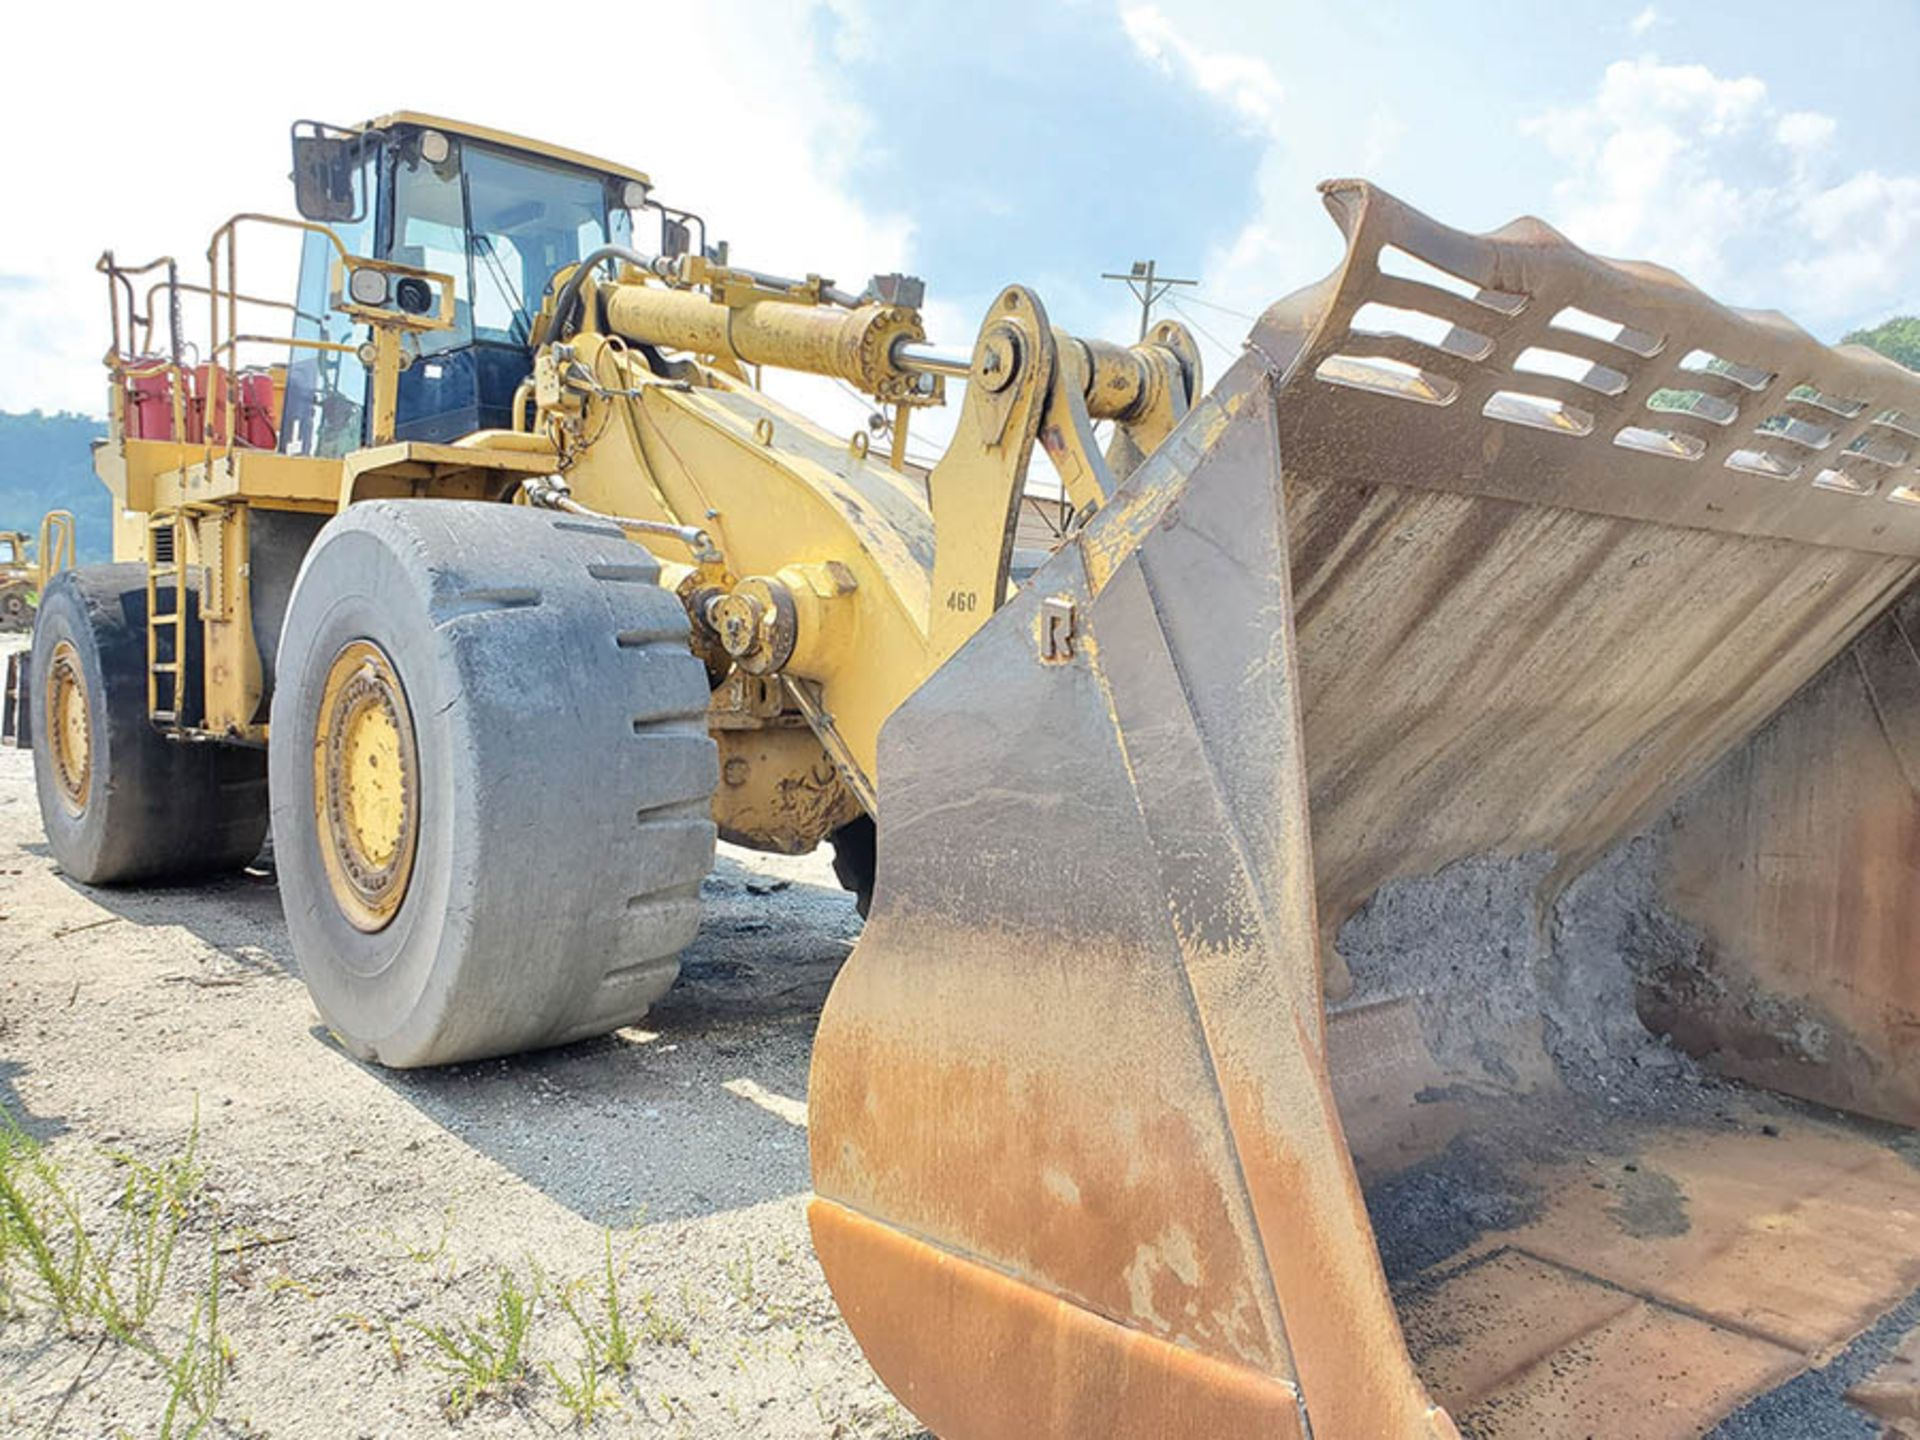 Lot 94 - CATERPILLAR 988G WHEEL LOADER, S/N: CAT0988GVBNH00460, HOURS UNKNOWN, CAT 6-CYLINDER TURBO DIESEL